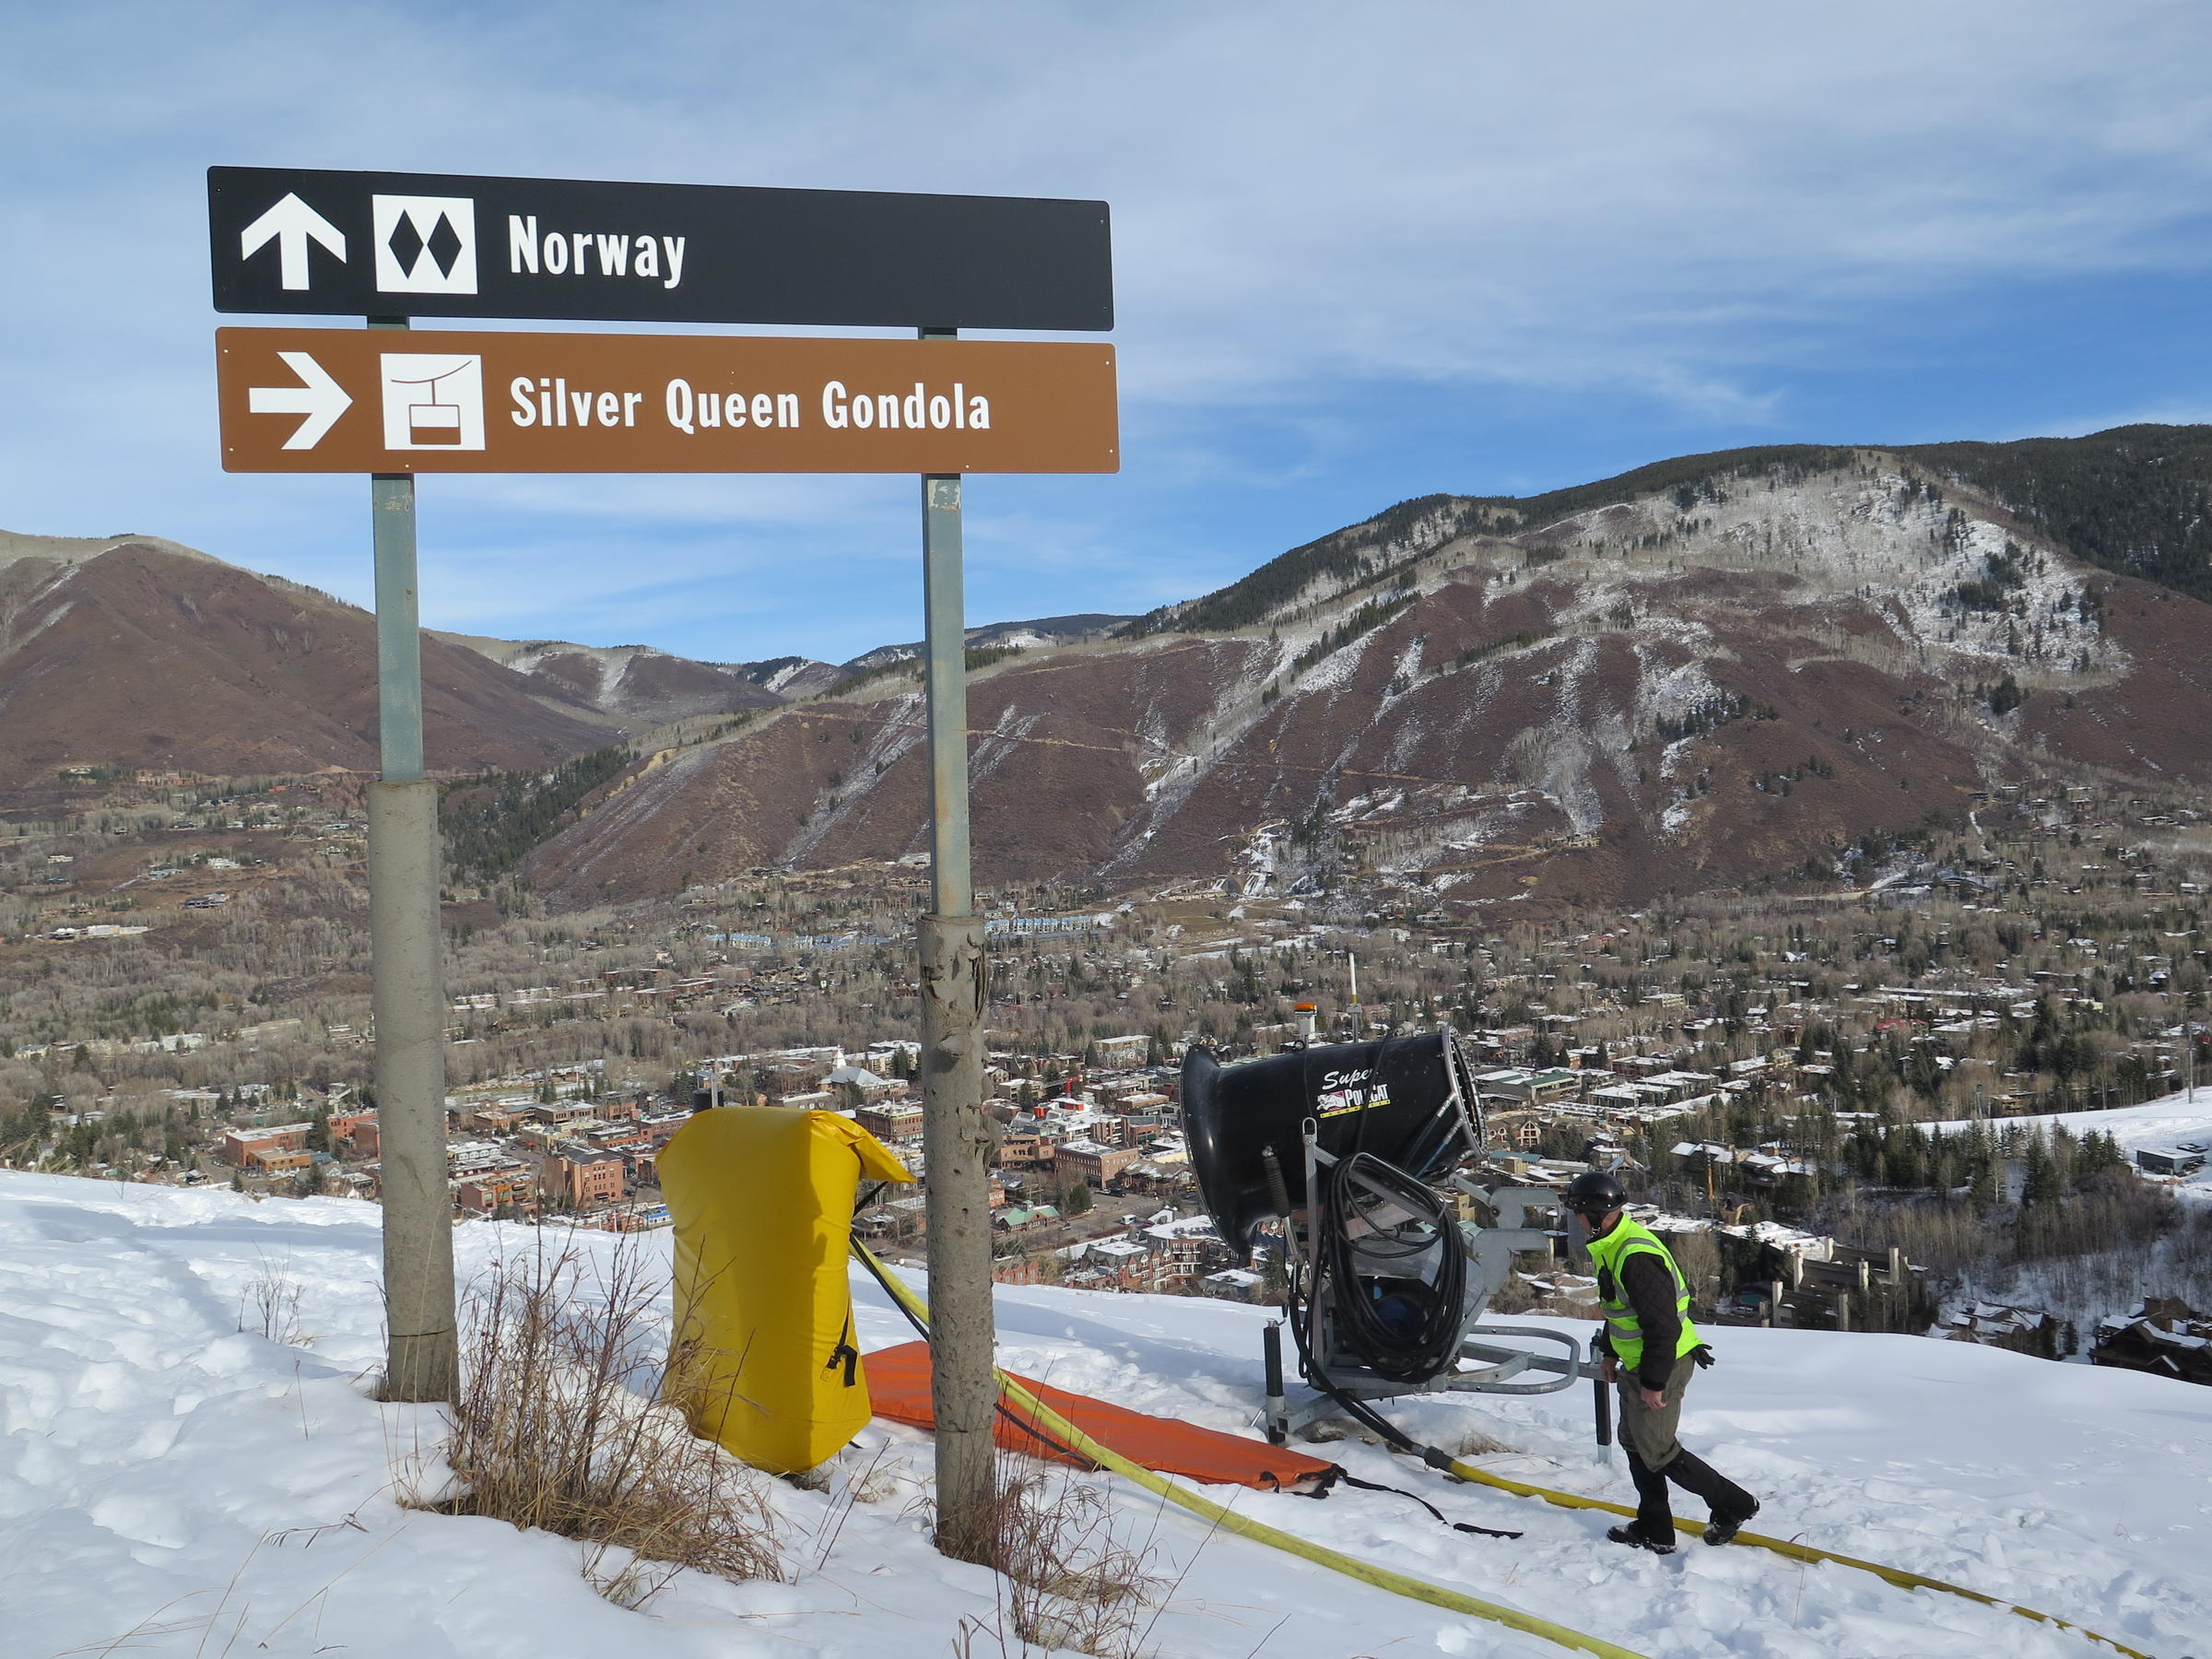 as more resorts make snow, climate change spells trouble | aspen